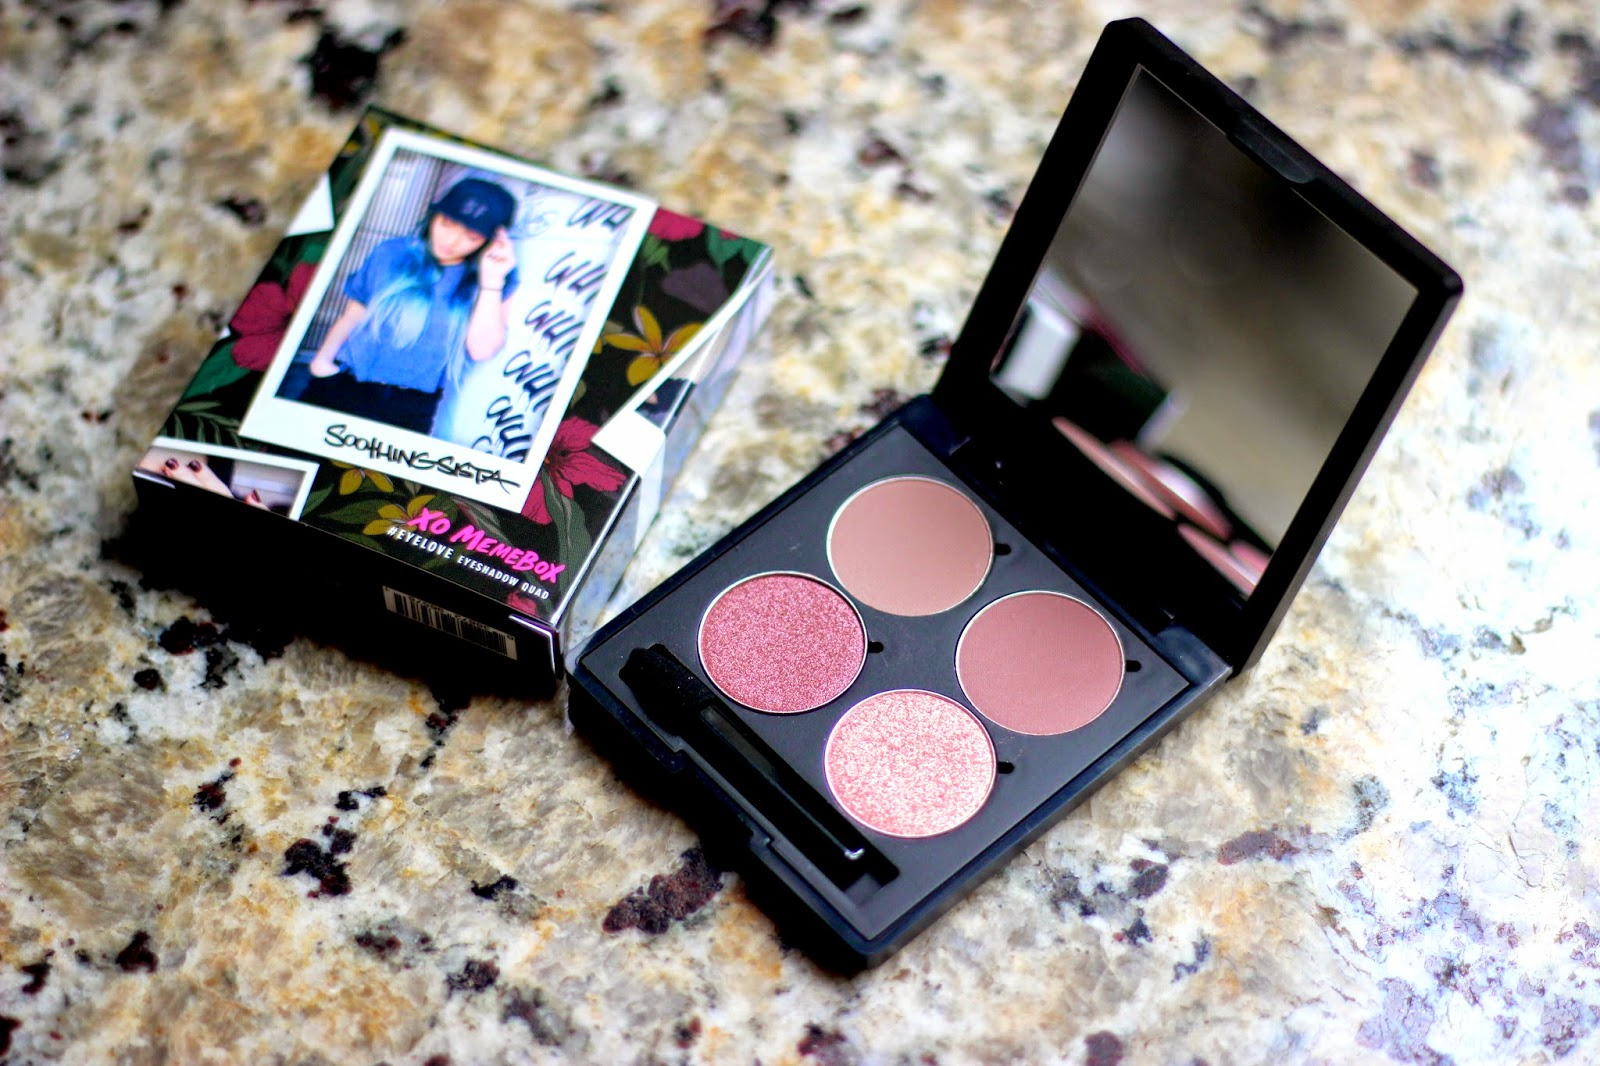 SoothingSista x Memebox #EYELOVESF Eyeshadow Quad